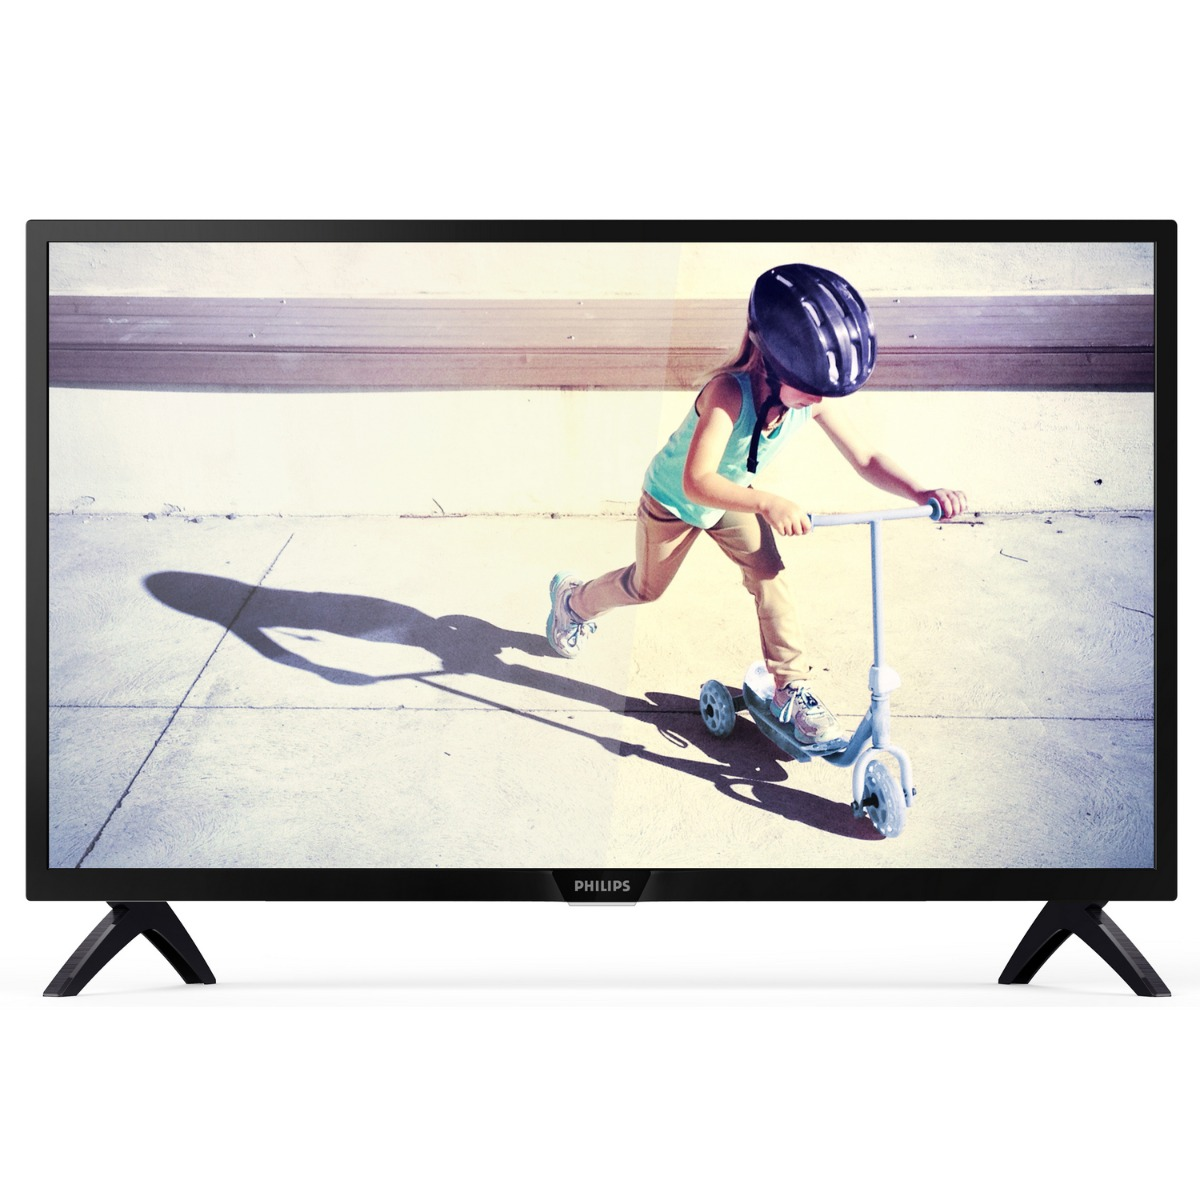 philips DTV 32PHT4002S